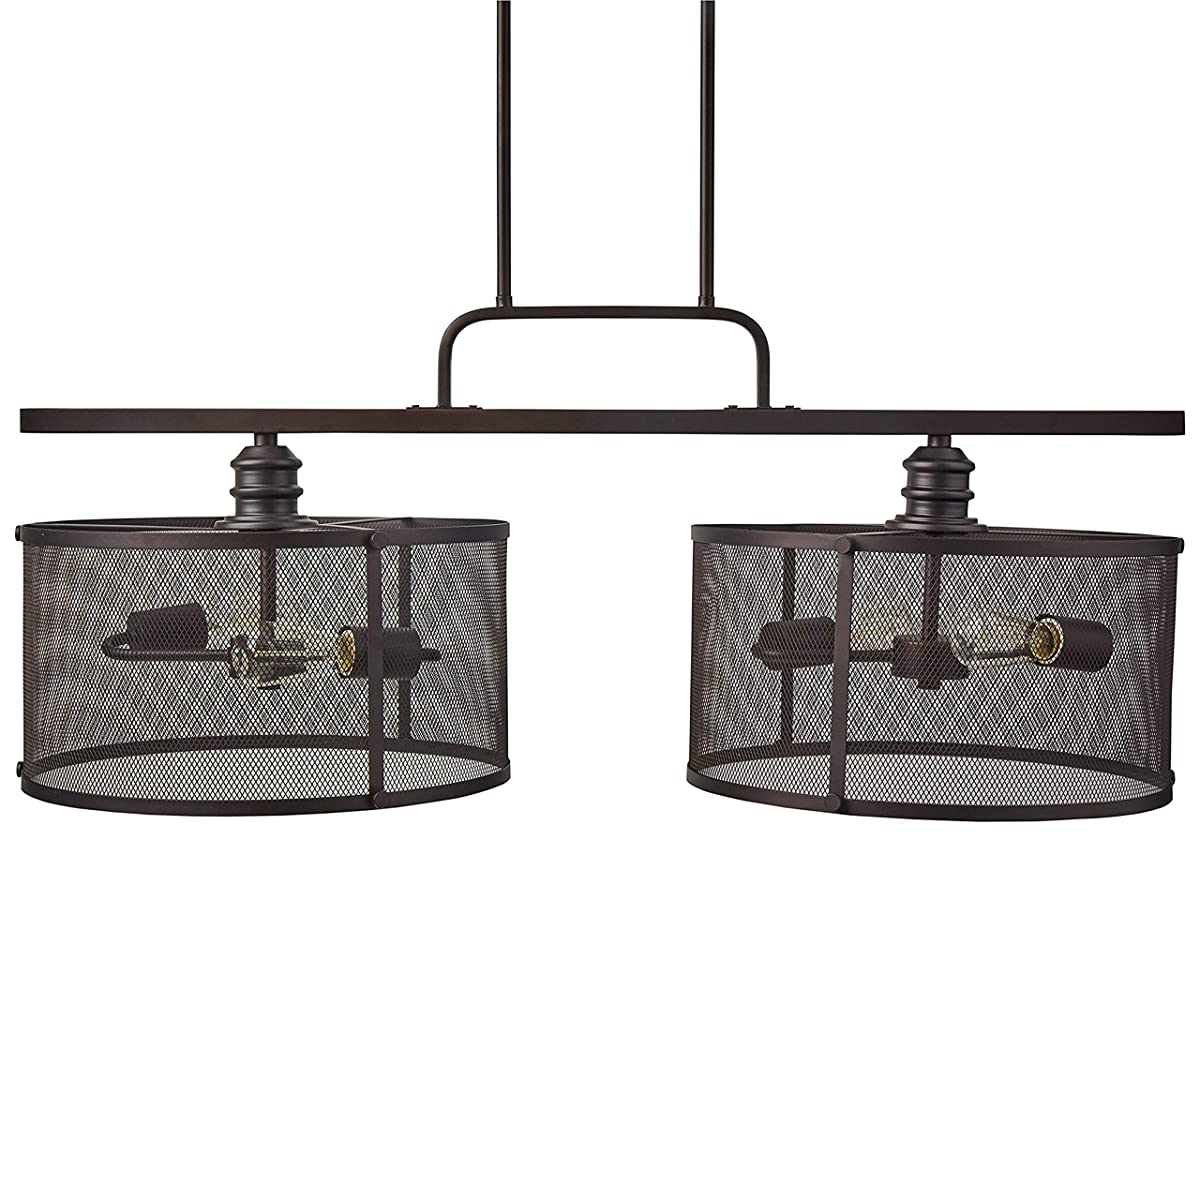 """Stone & Beam Hobbs Double Pendant With Bulbs, 24"""" to 66""""H, Oil-Rubbed Bronze"""